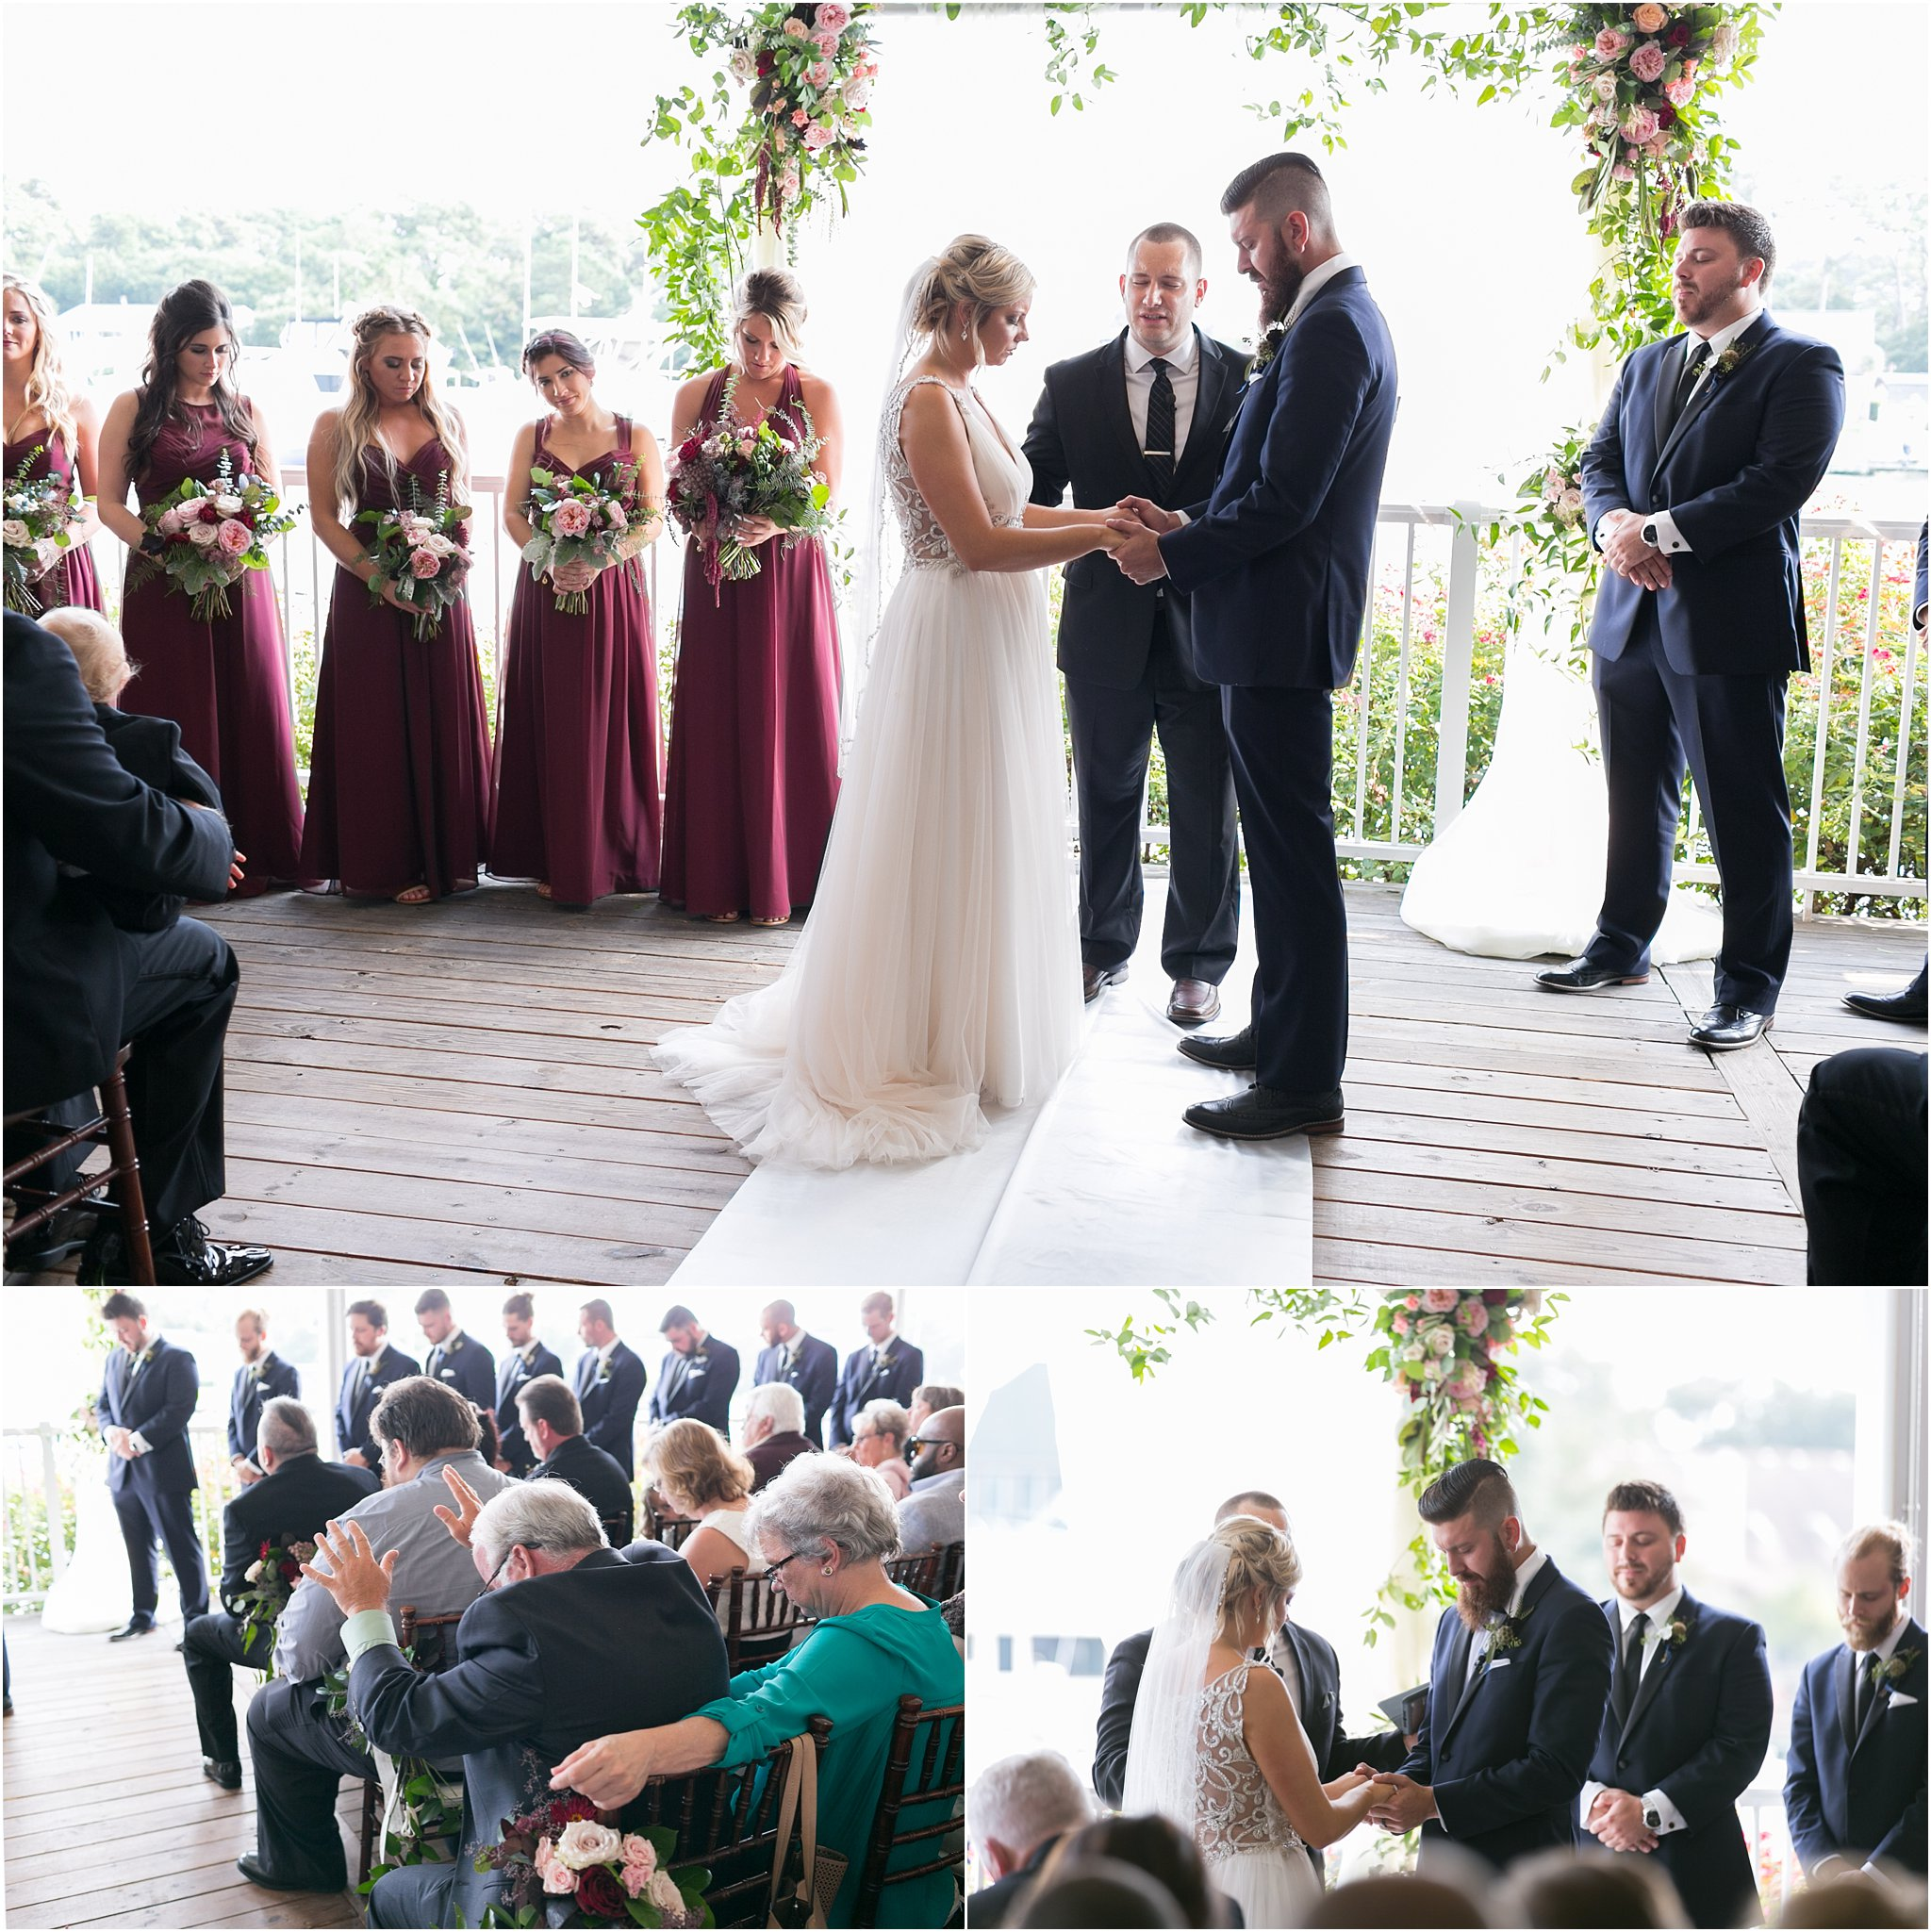 jessica_ryan_photography_virginia_wedding_photographer_candid_authentic_hampton_roads_wedding_photography_marina_shores_yacht_club_first_landing_state_park_woodland_theme_garden_3322